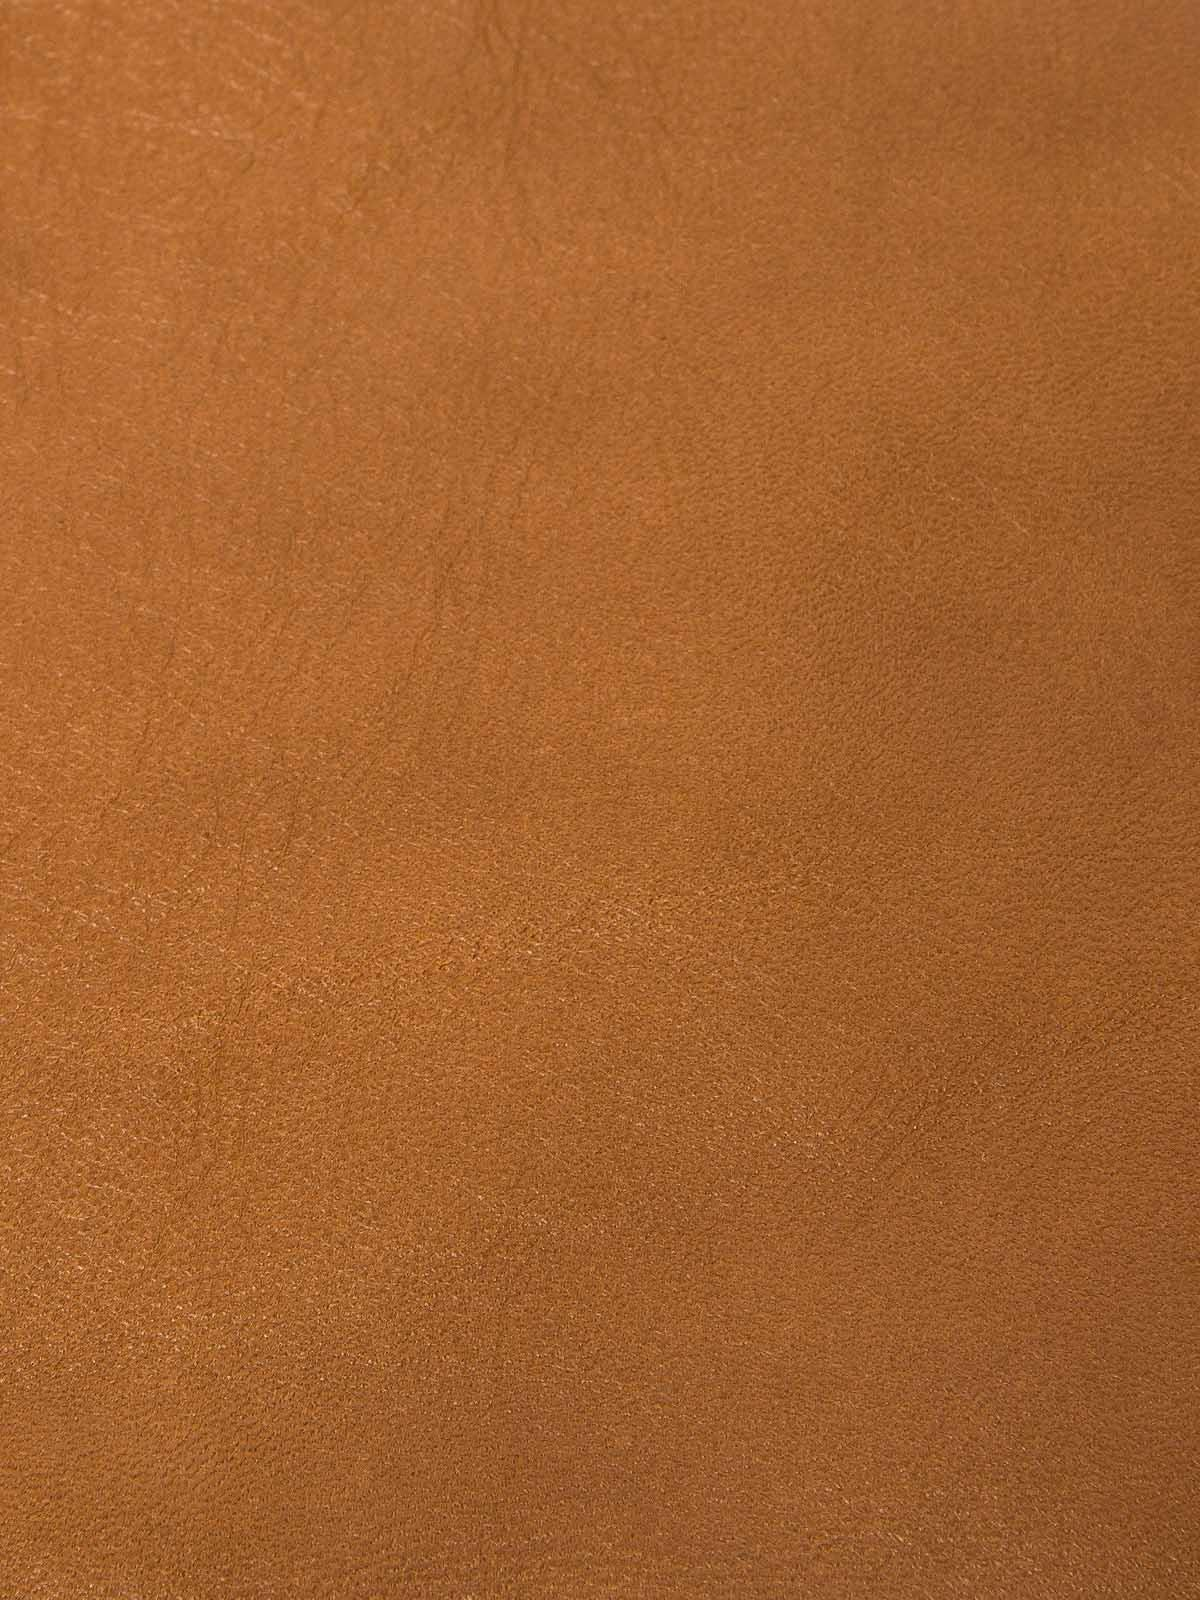 Leather brown light